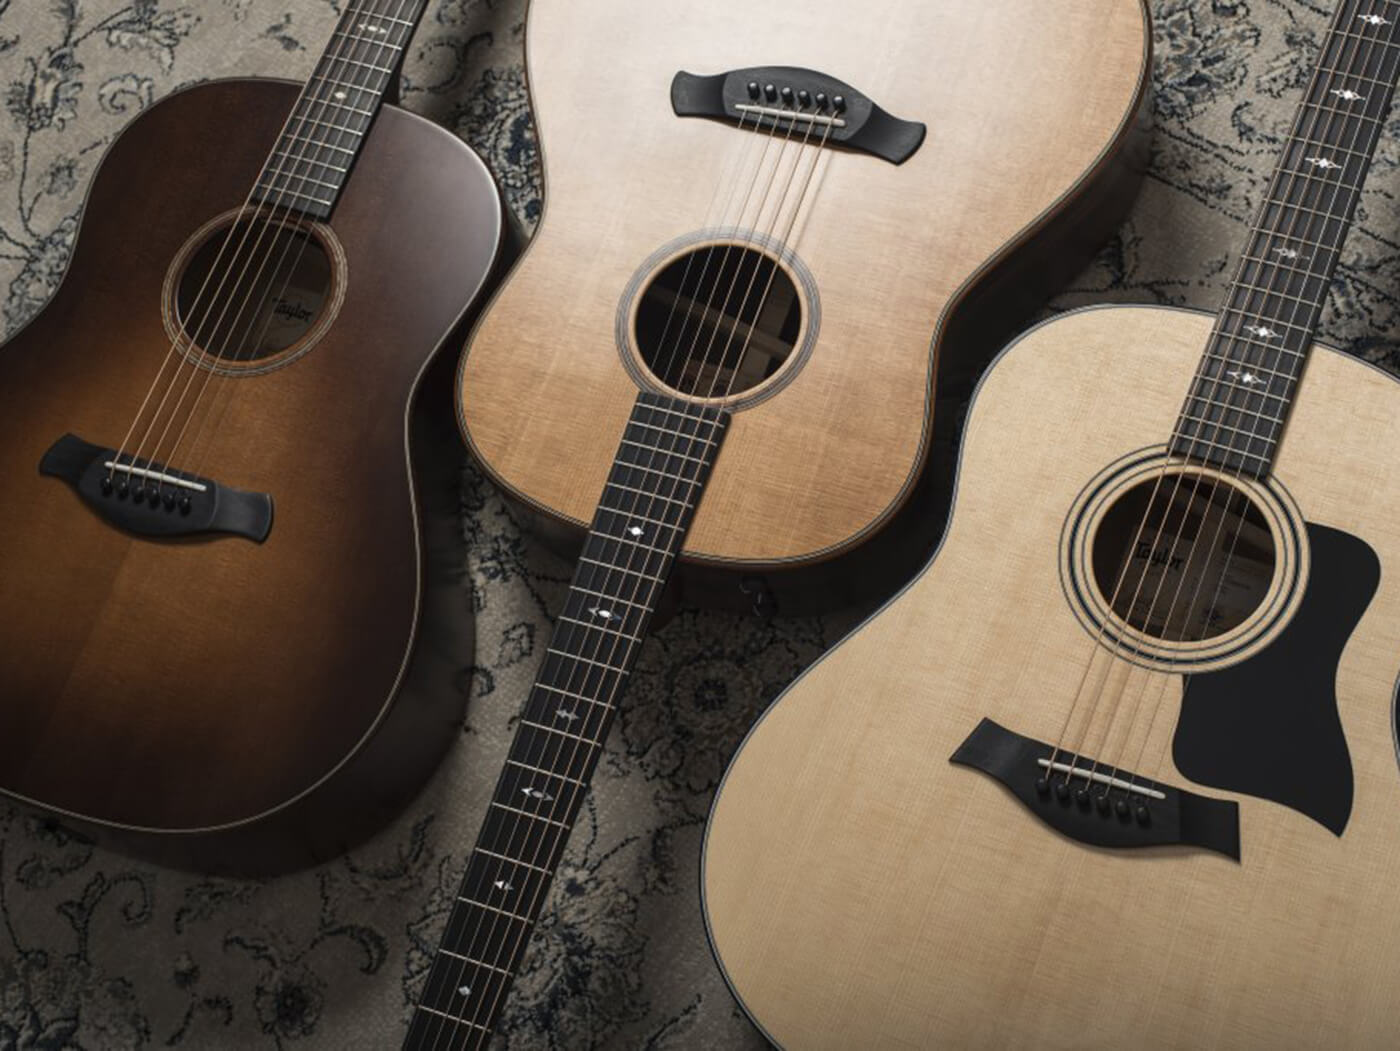 Taylor Grand Pacific Builder's Edition 517e, 717e, 317